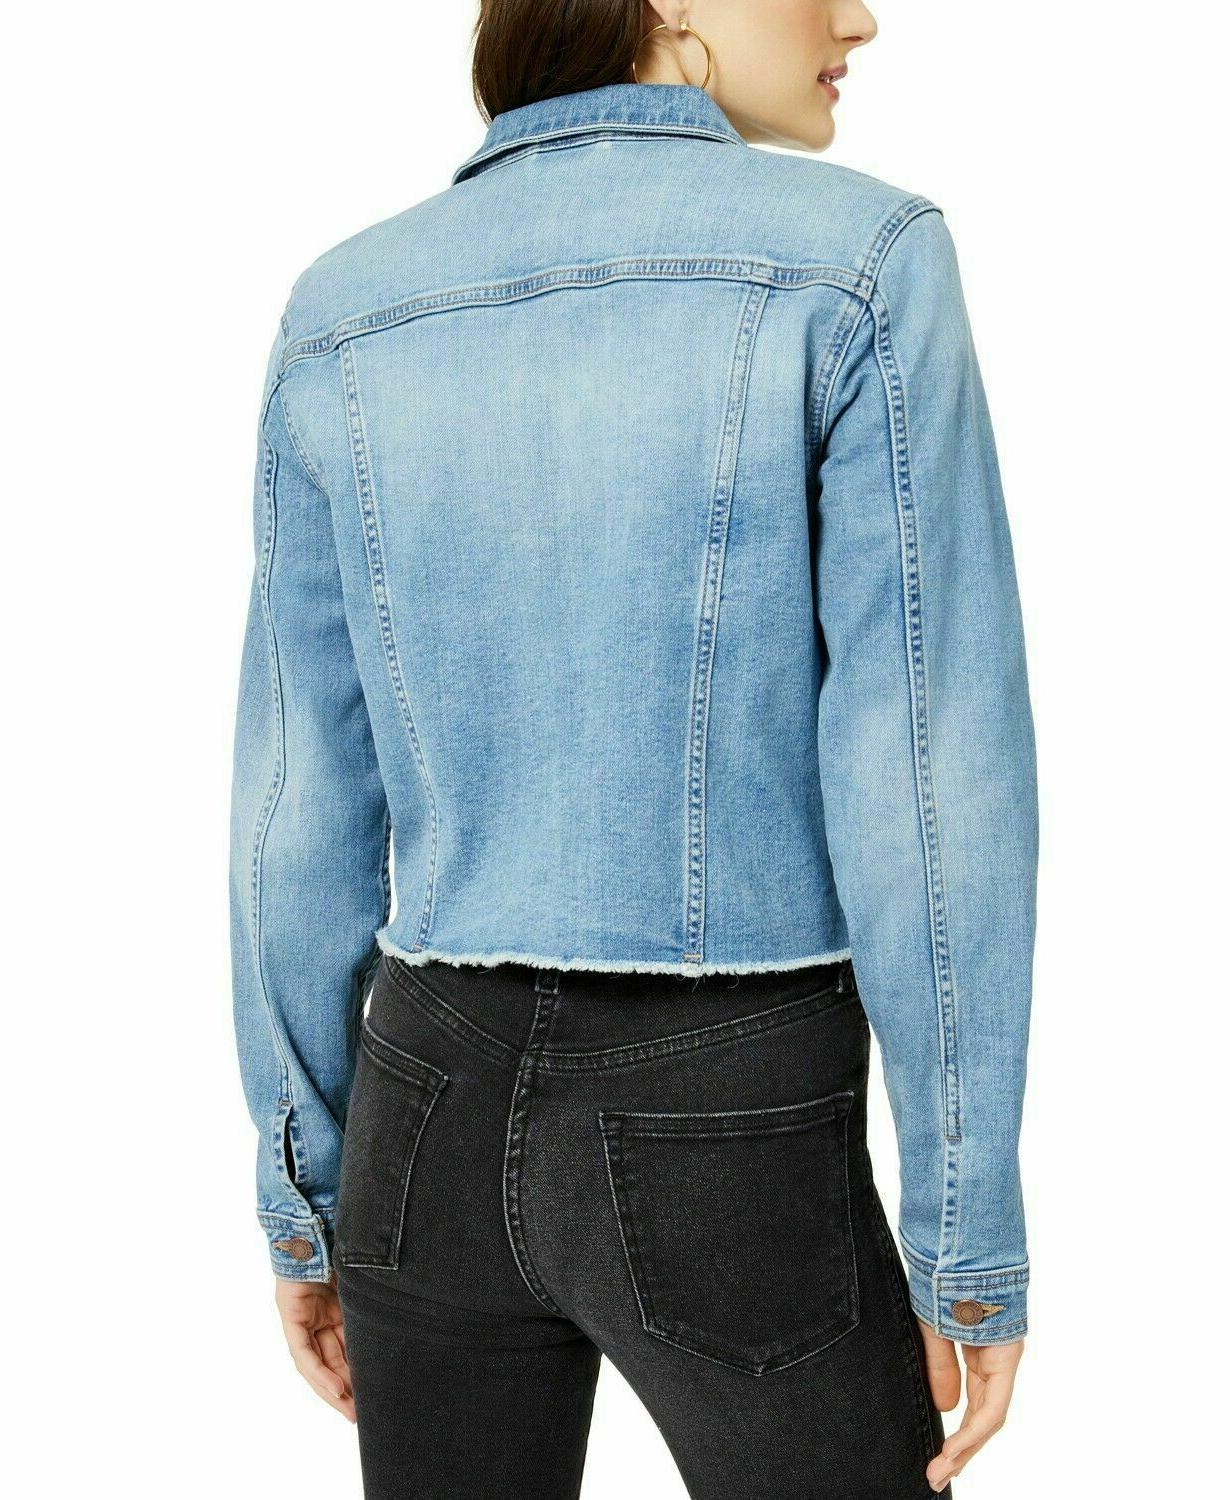 NWT Cotton Denim Jacket L